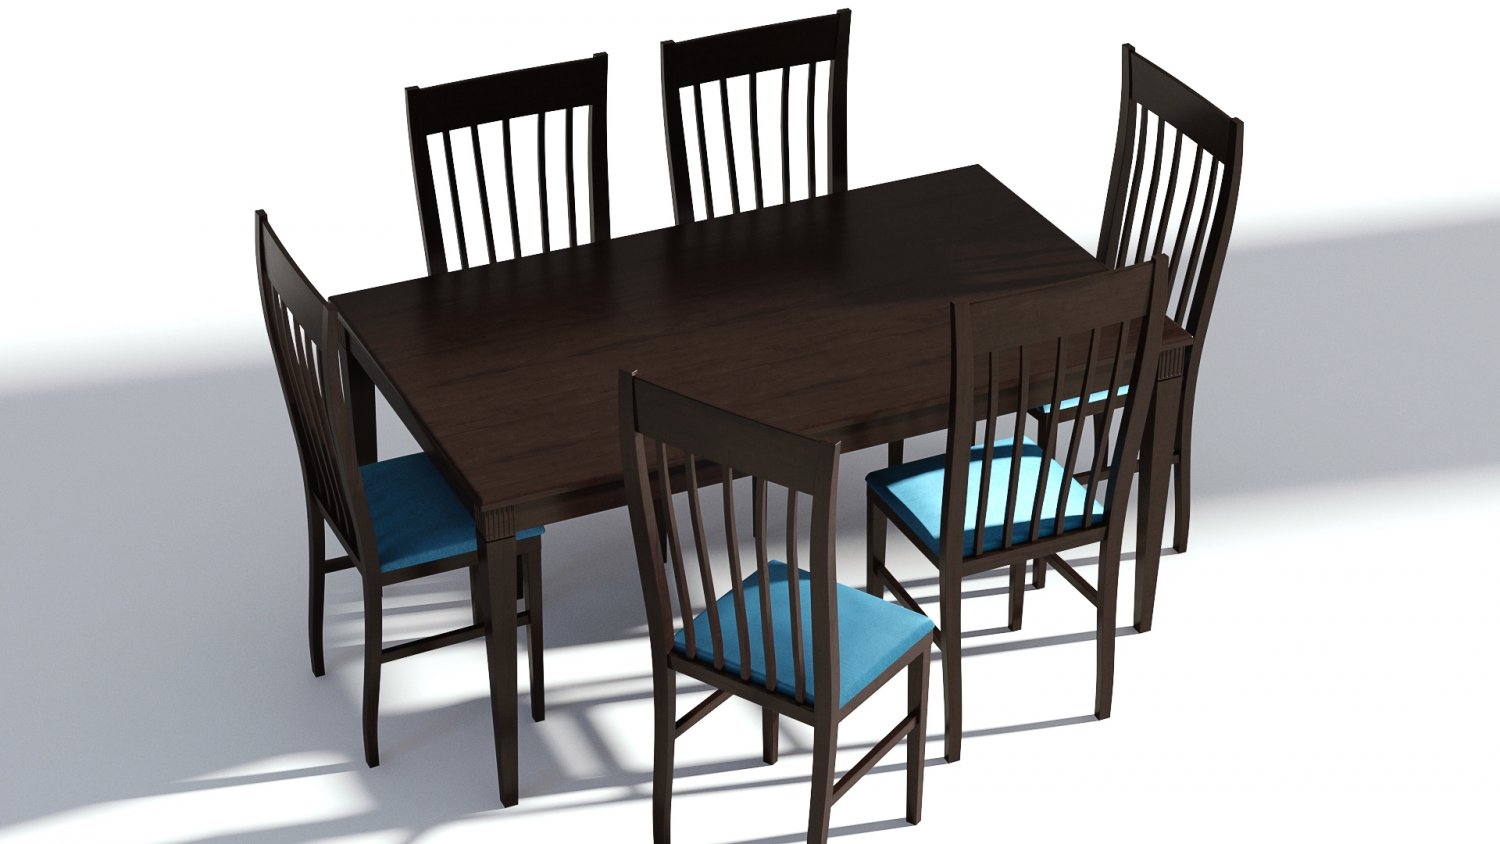 Dark Wooden Dining Set 6 Chairs And Table 3d Modell In Tisch 3dexport